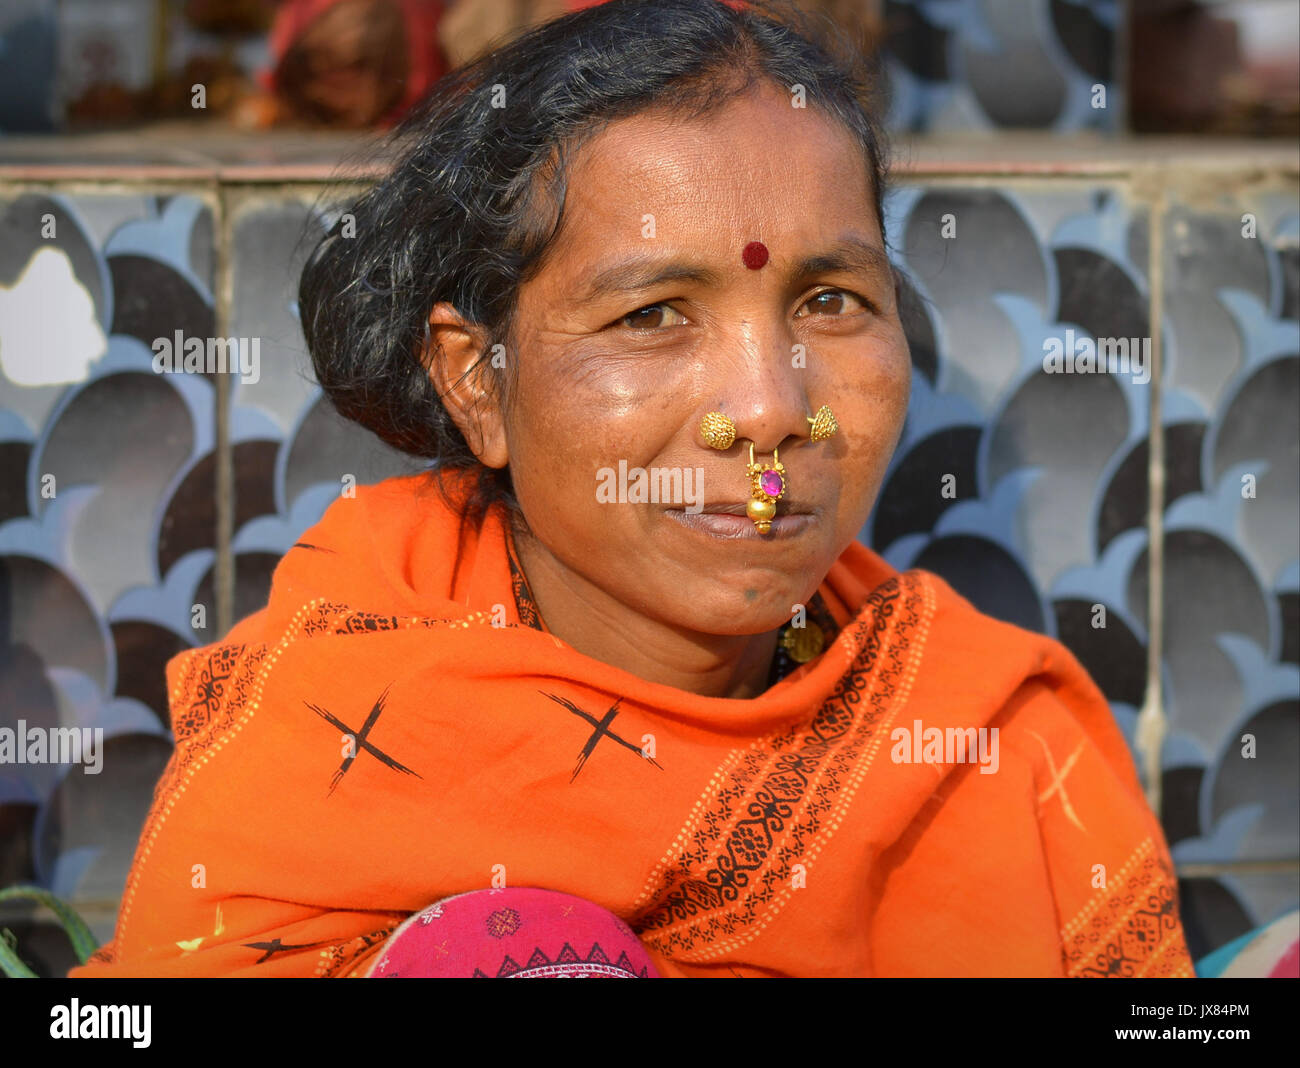 Closeup street portrait (outdoor headshot, three-quarter view) of a mature Indian Adivasi market woman with two - Stock Image